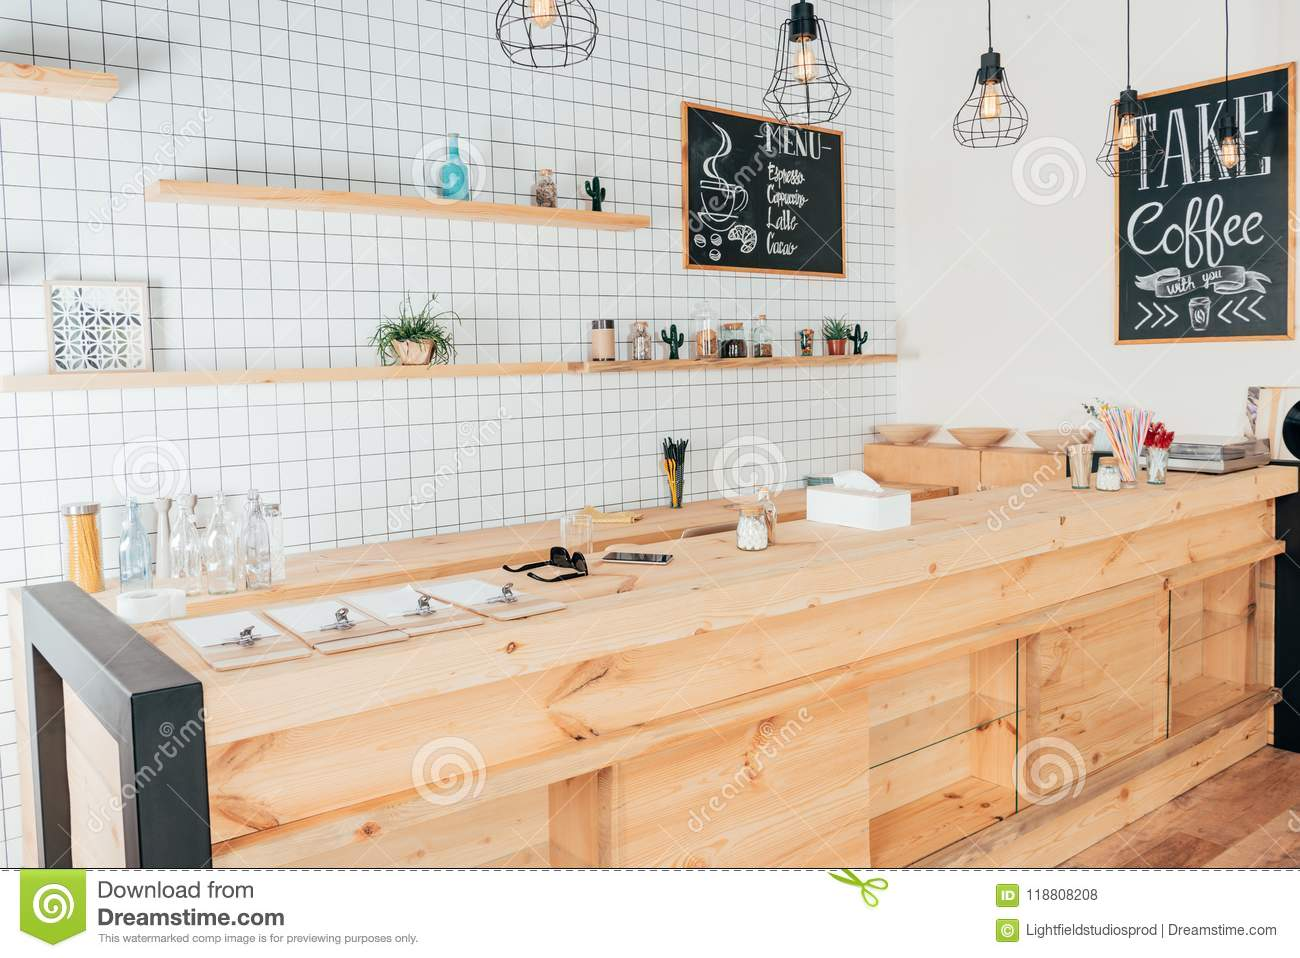 Wooden Bar Counter Of Modern Cafe Decorated With White Tiles Stock